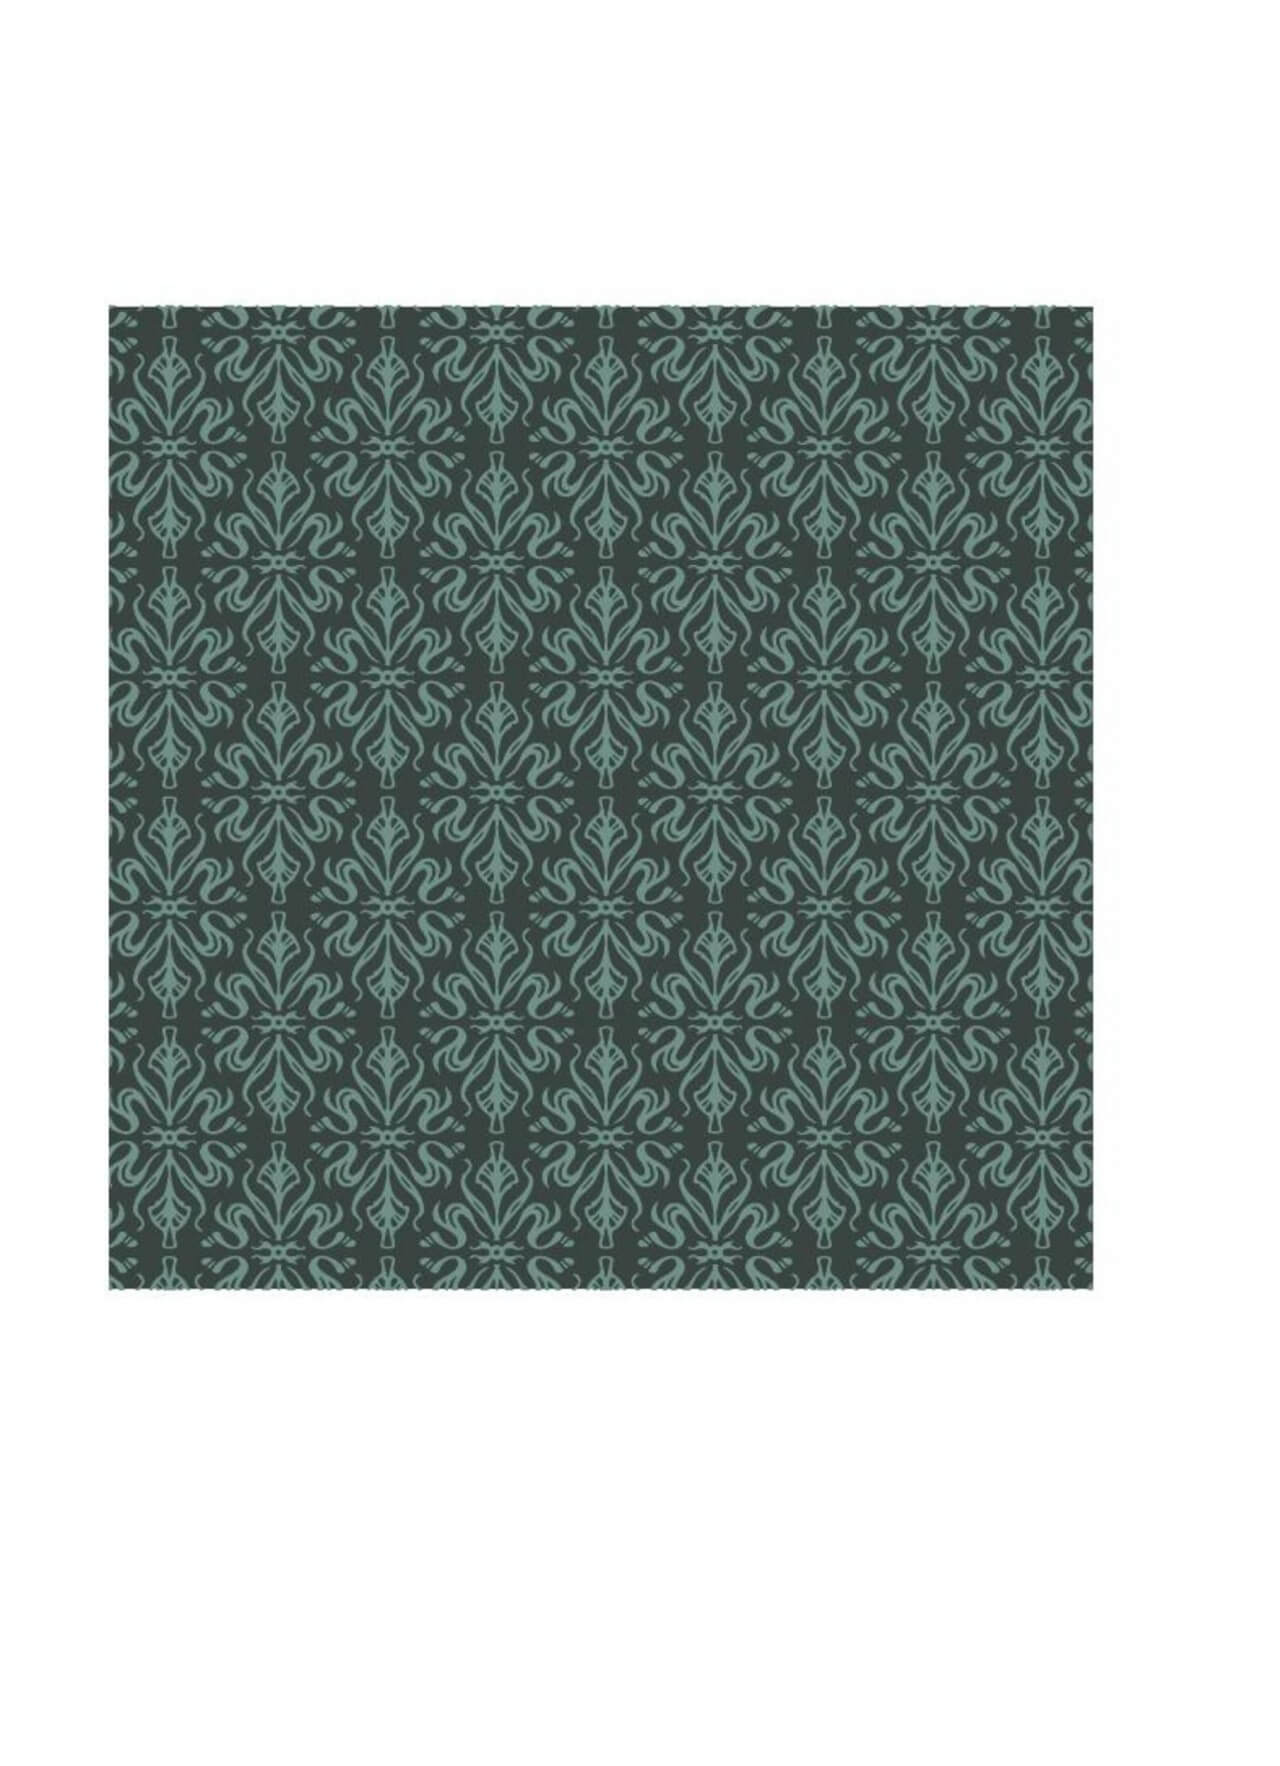 "Free vector ""Ornate wallpaper style pattern"""